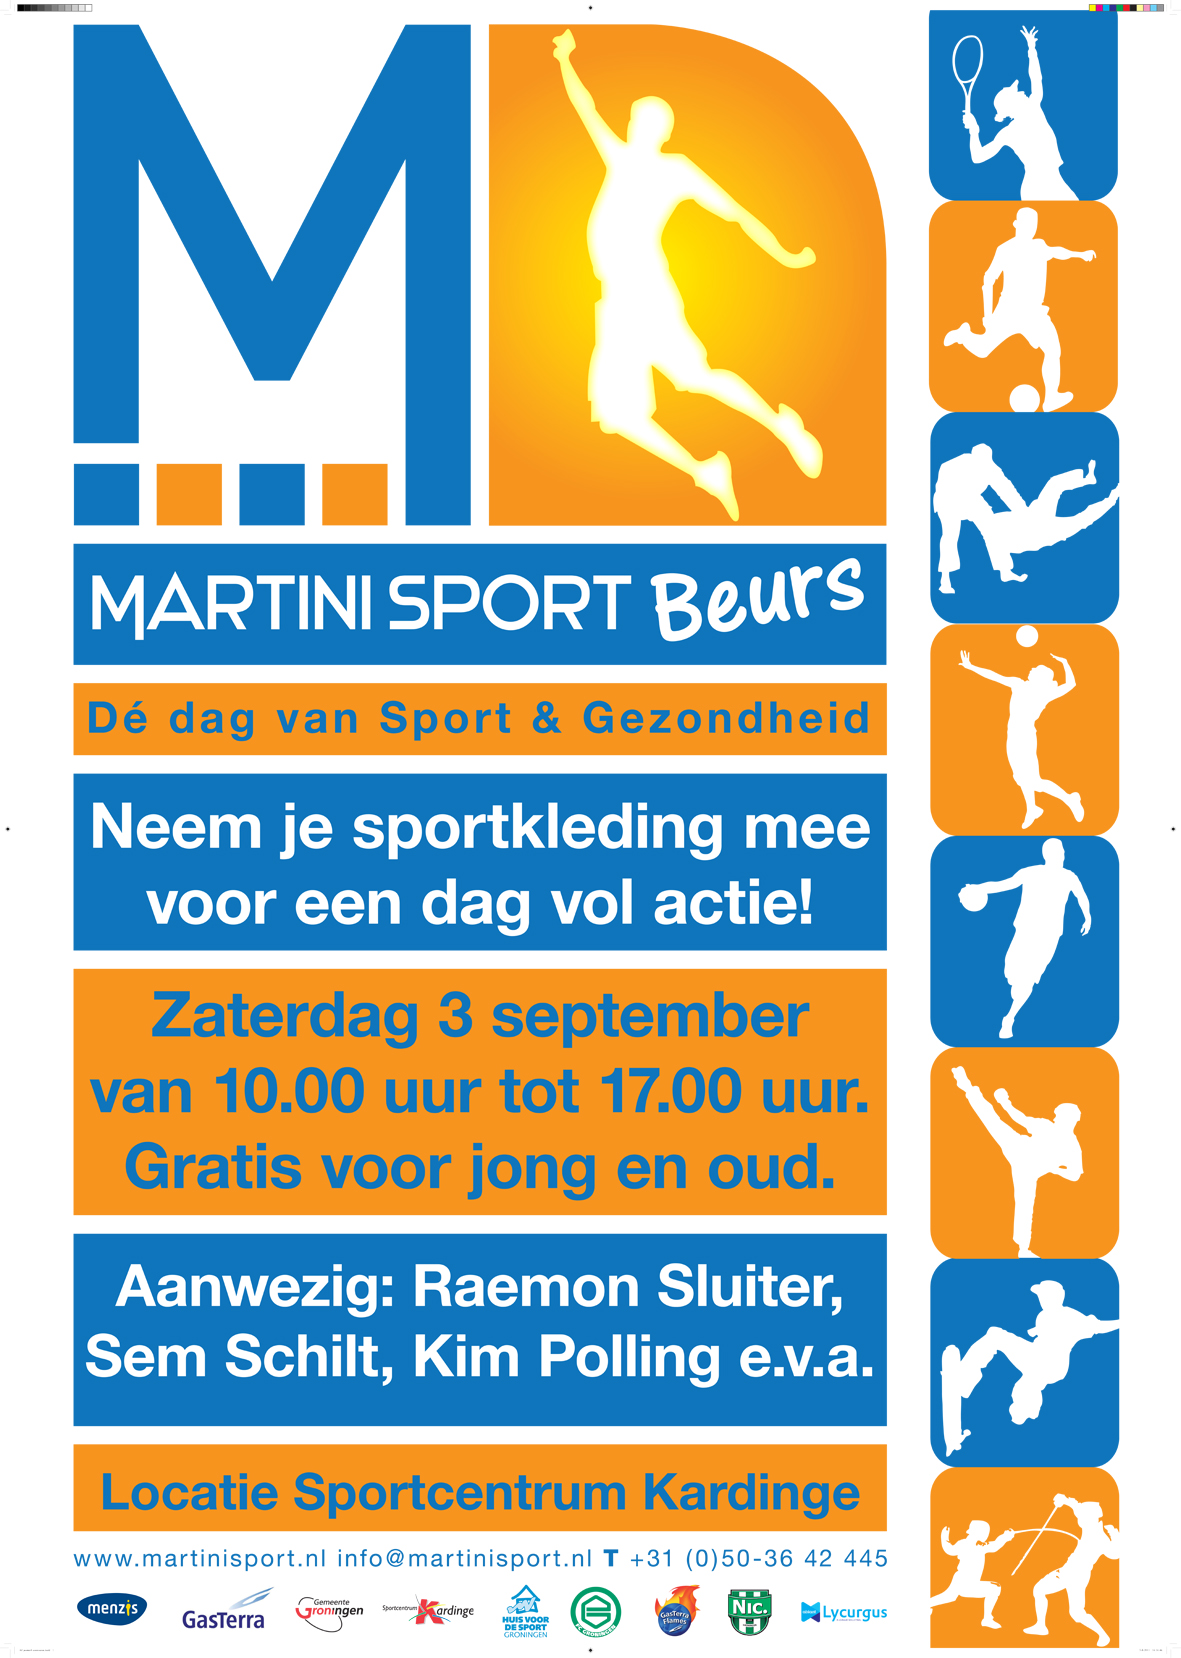 A0-poster-Martini-Sport-Beurs